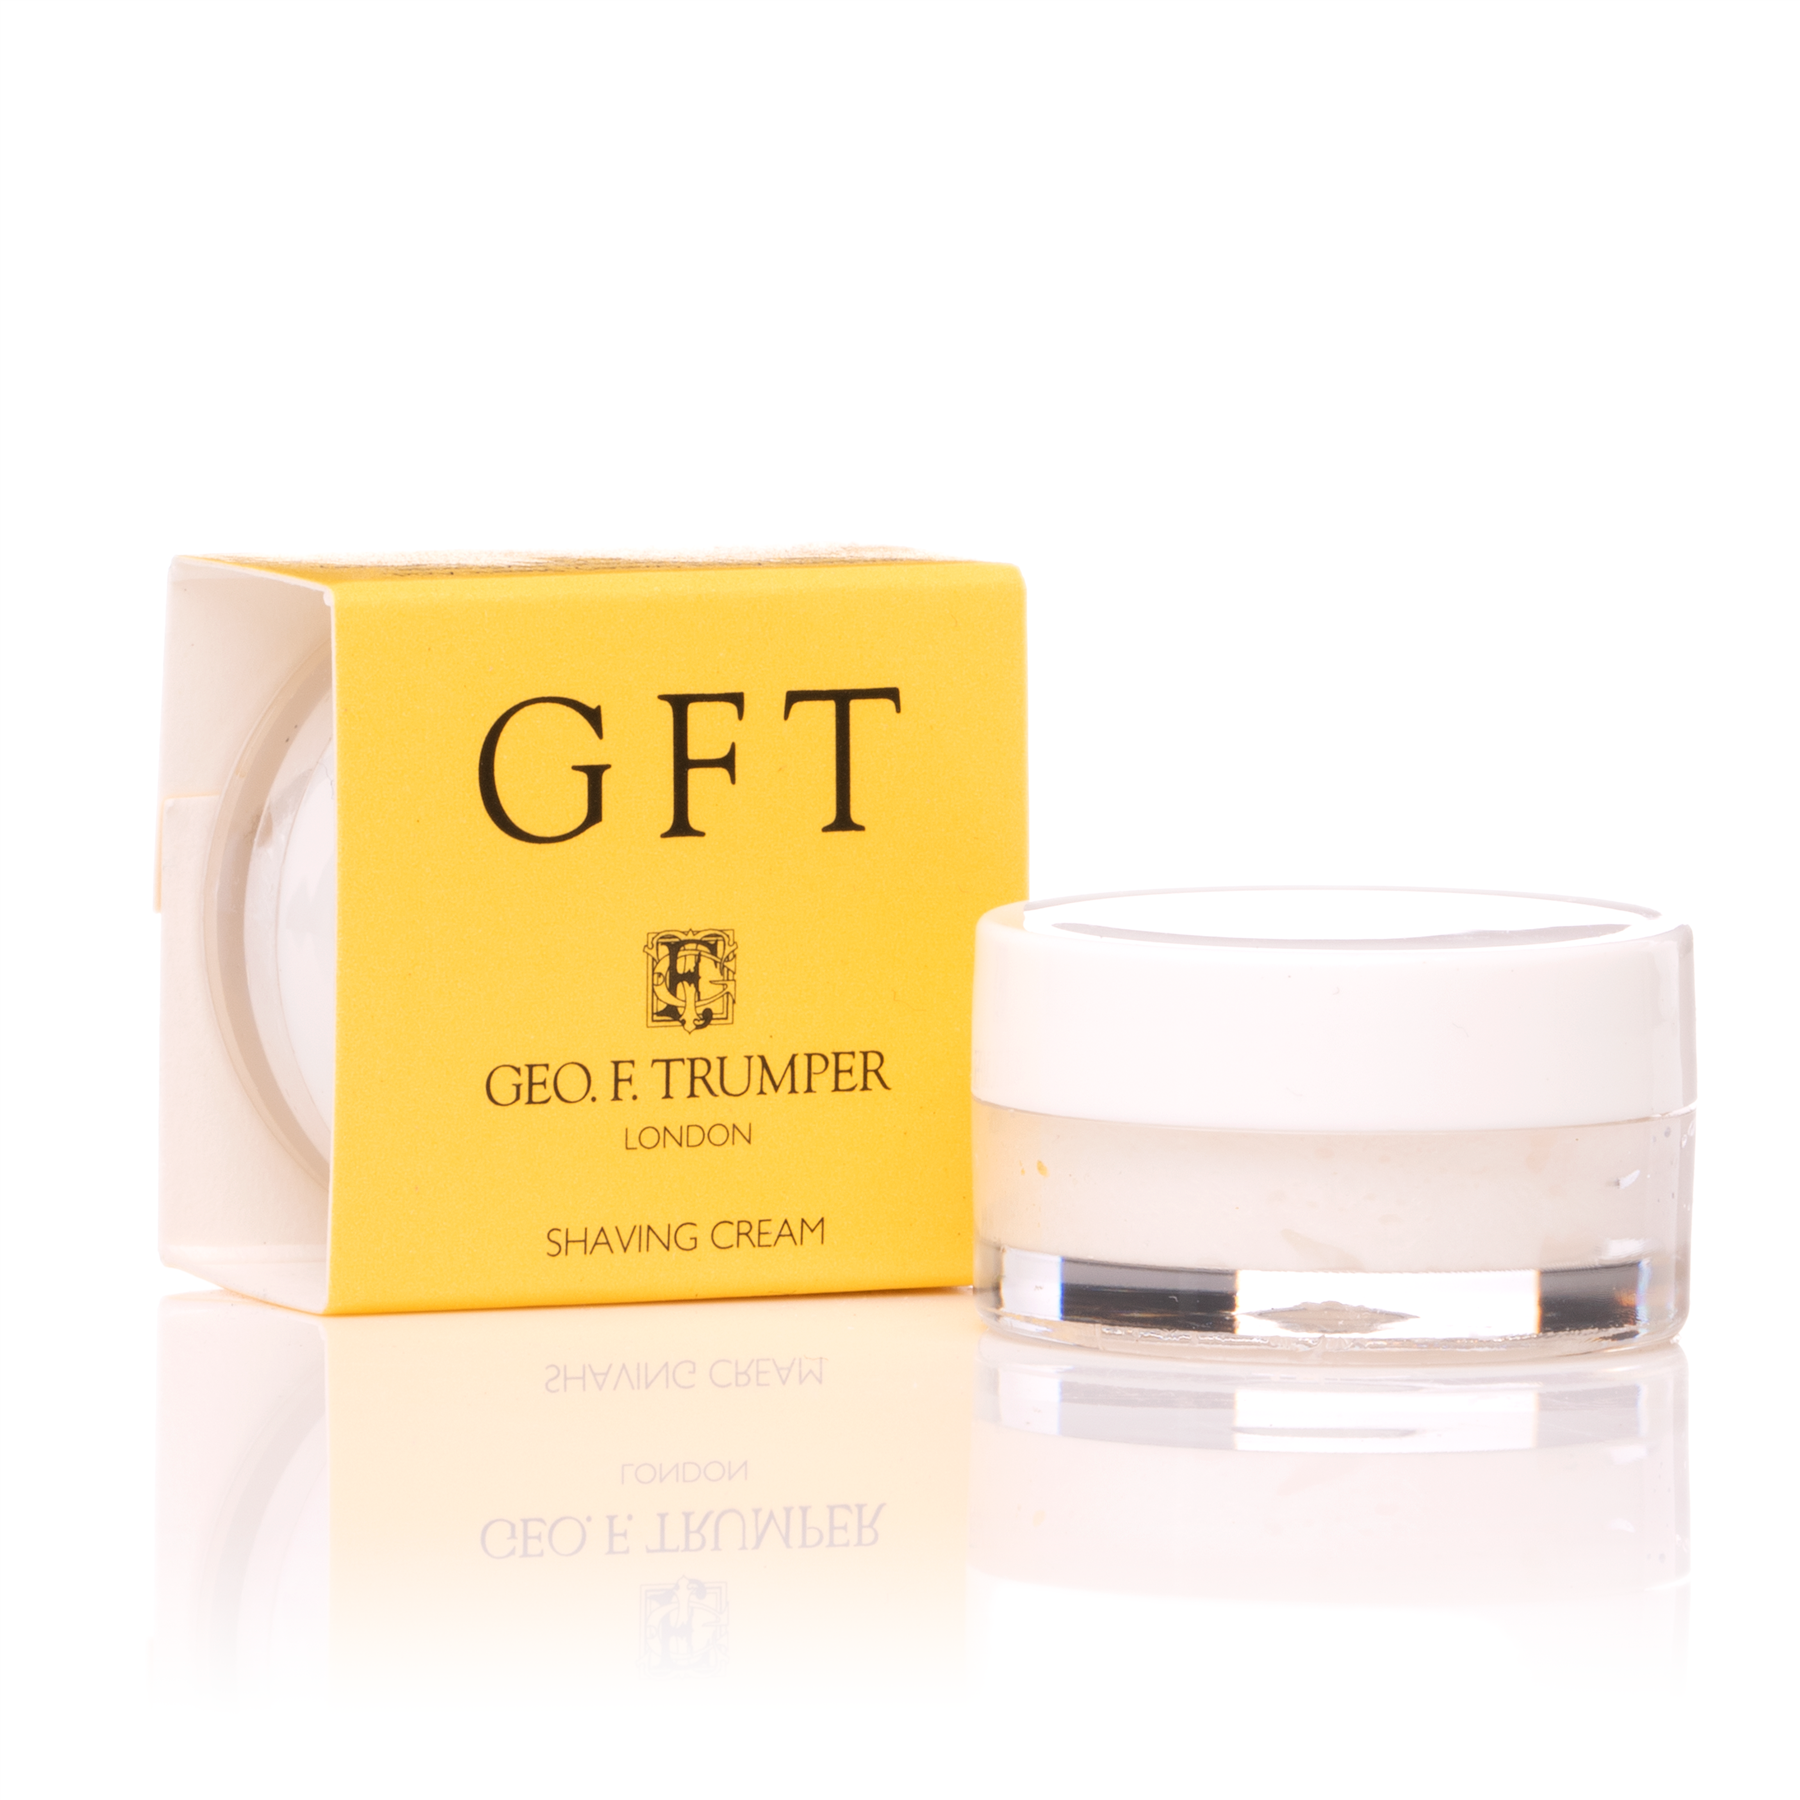 Geo F Trumper GFT Citrus Shaving Cream Sample